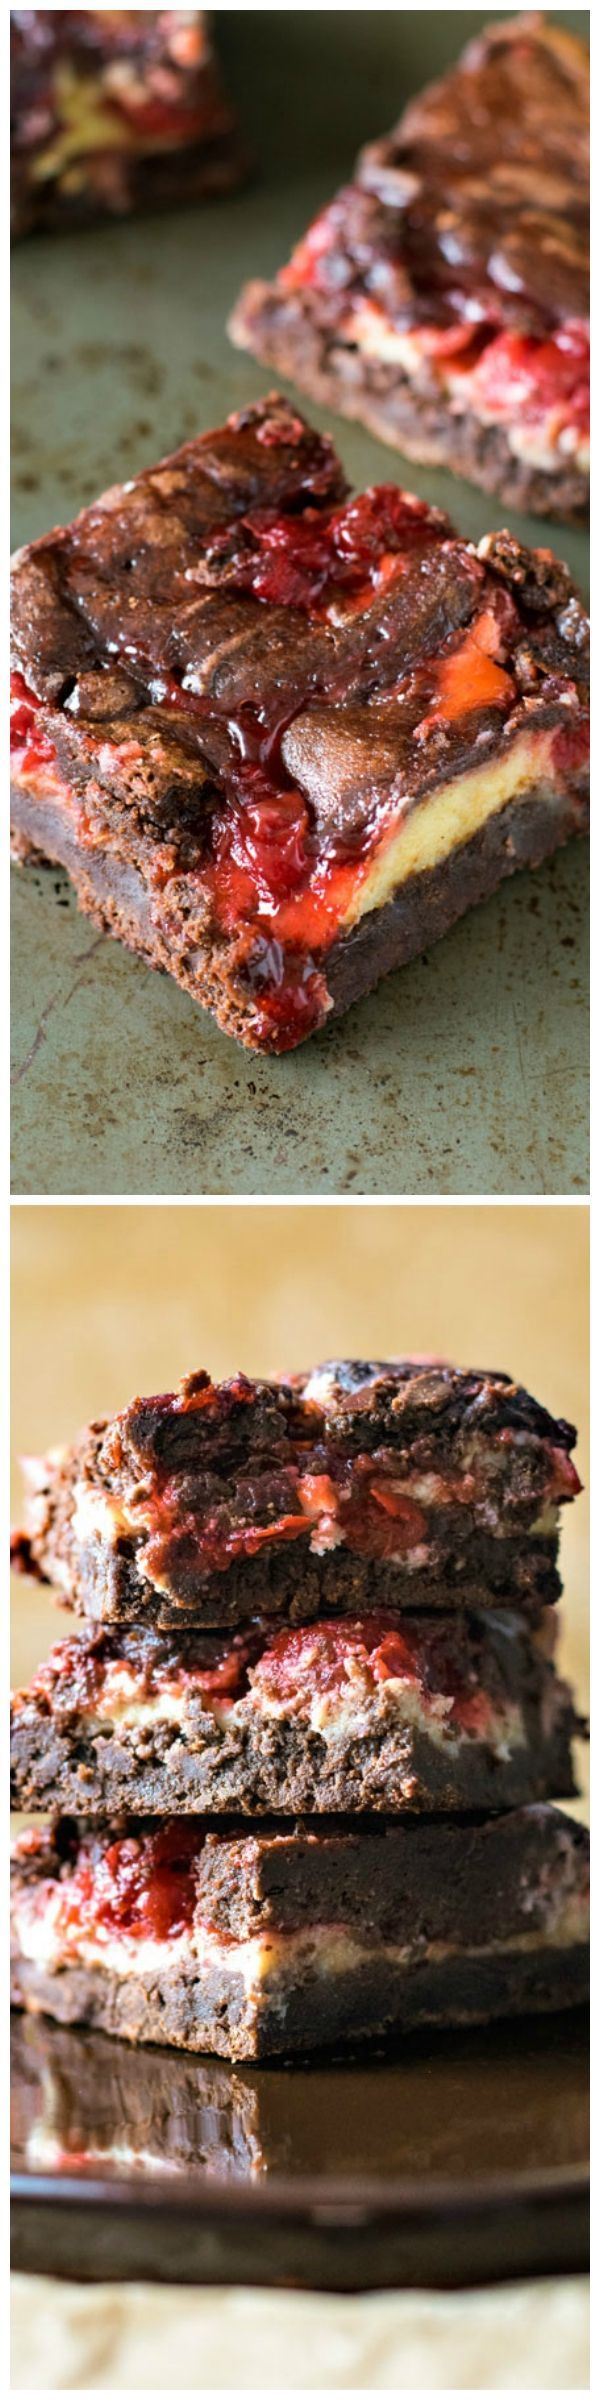 The ultimate brownie recipe baked with swirls of cheesecake and cherry pie filling!